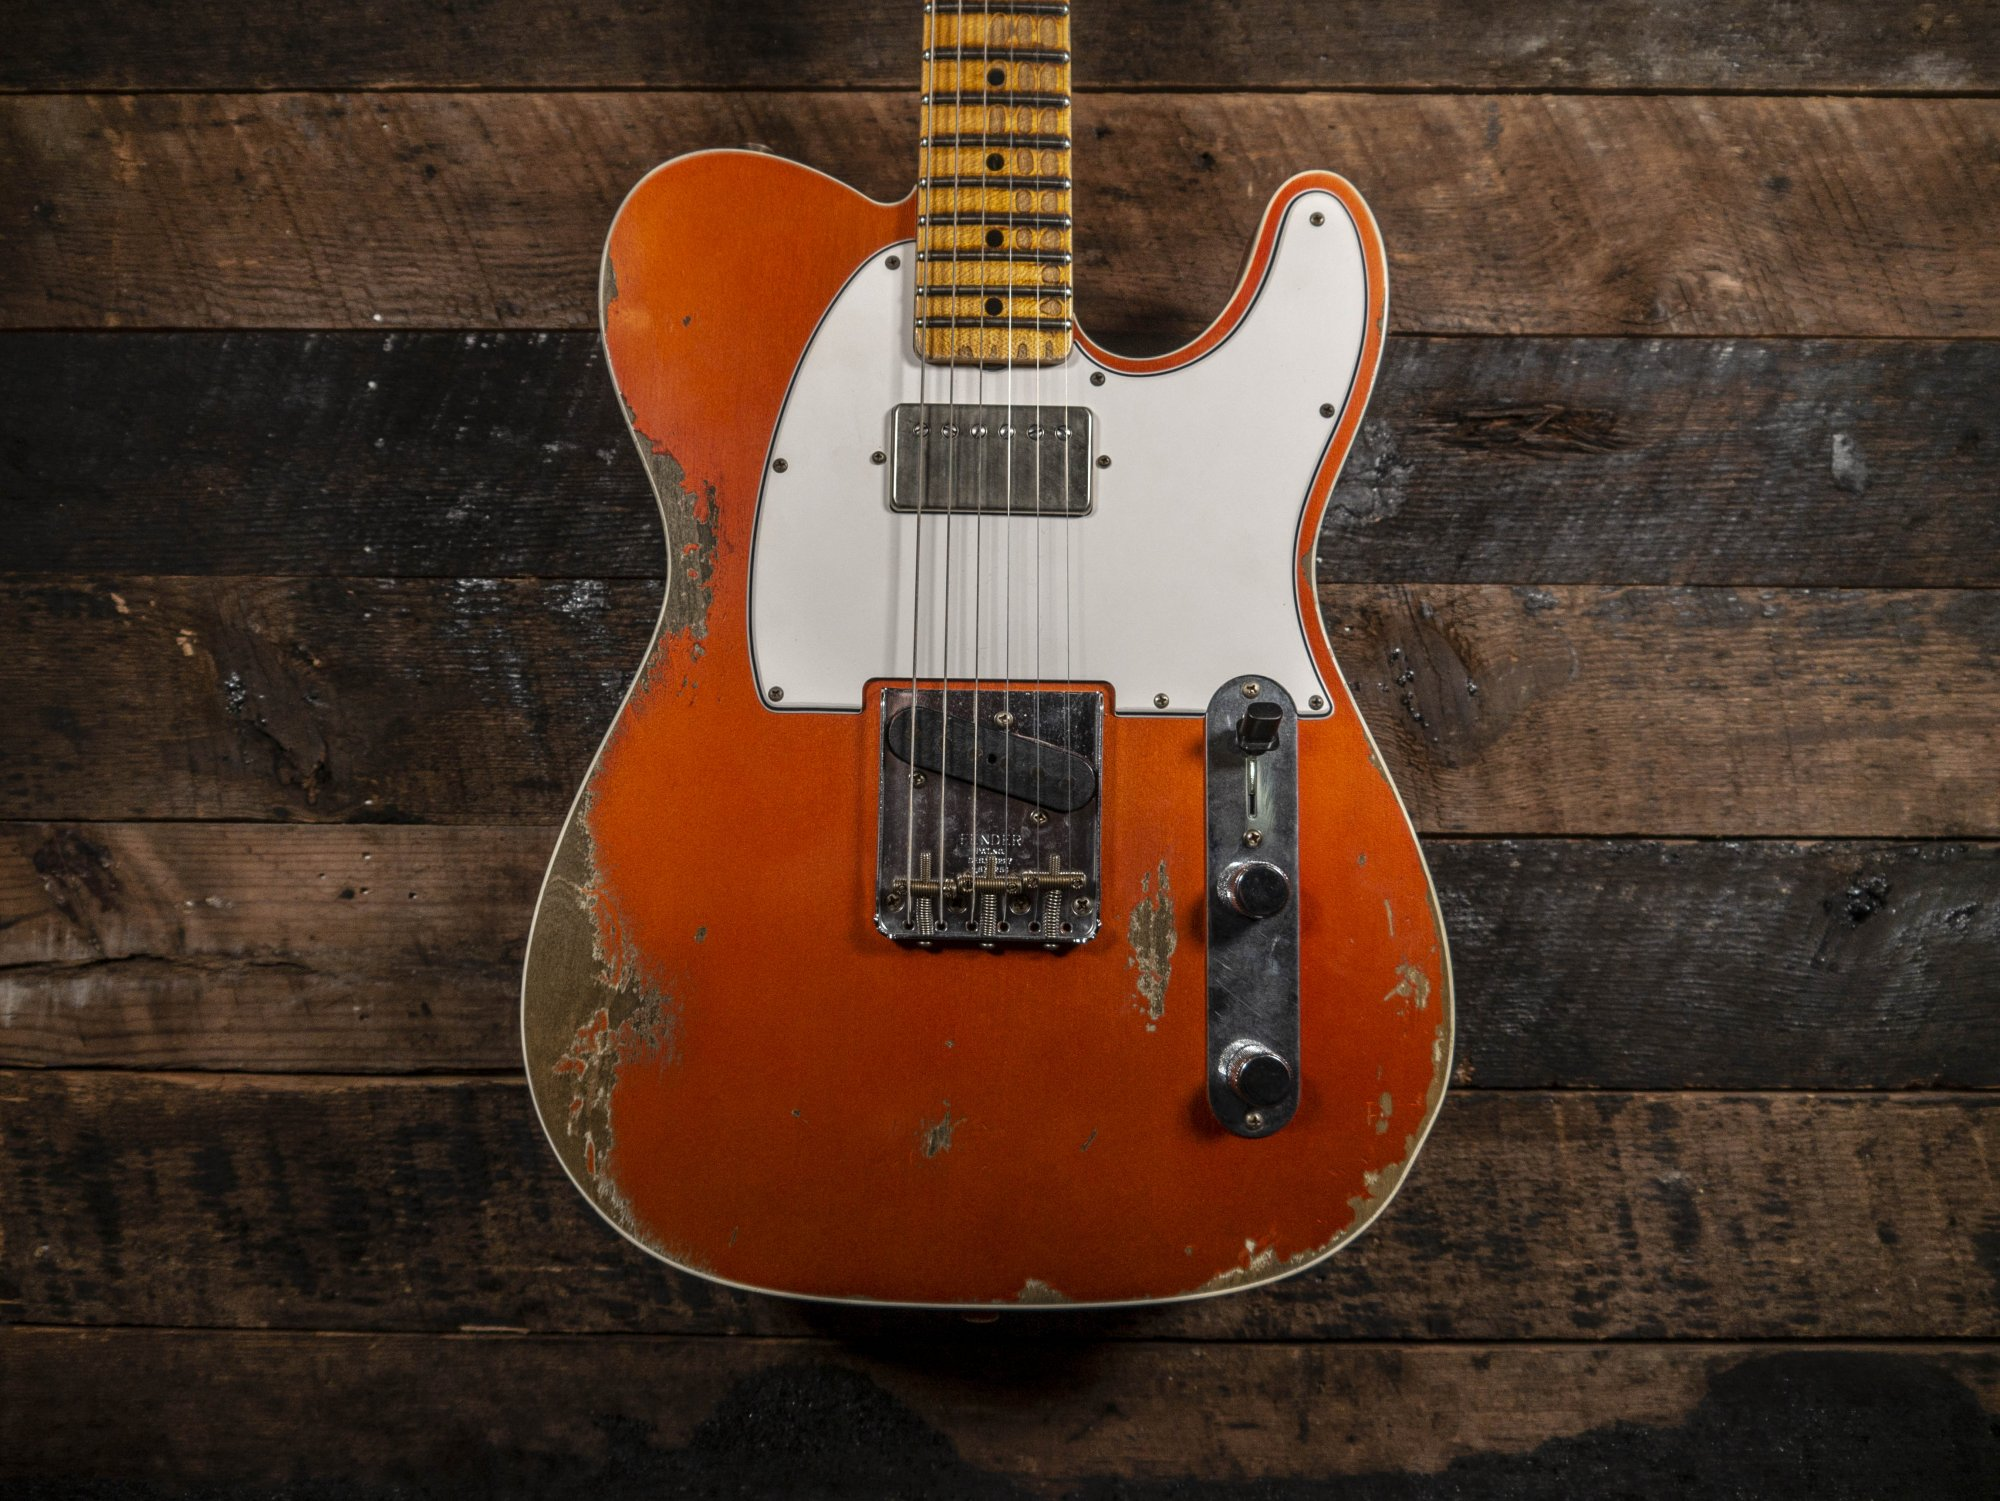 Fender Custom Shop 1965 HS Telecaster Faded/Aged Candy Tangerine